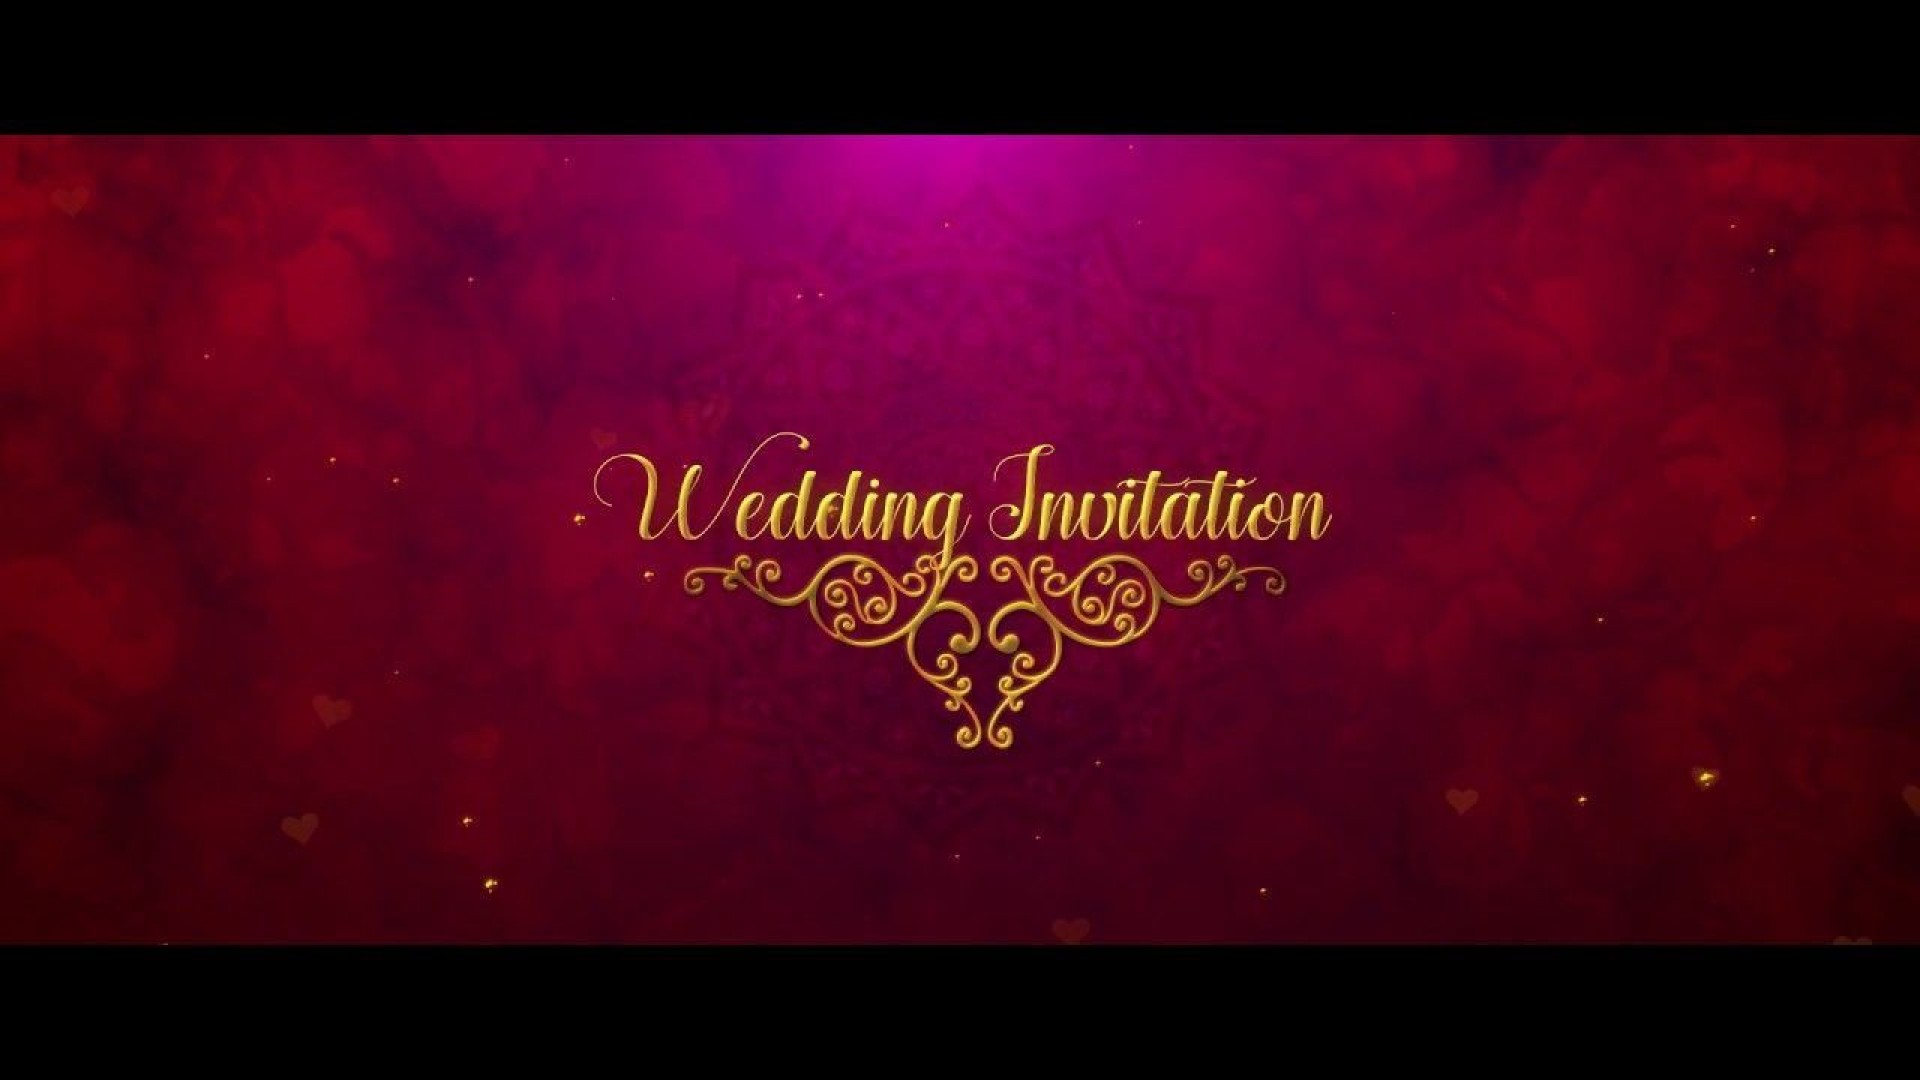 006 Frightening Free Online Indian Invitation Template High Resolution  Templates Engagement Card Maker Wedding1920